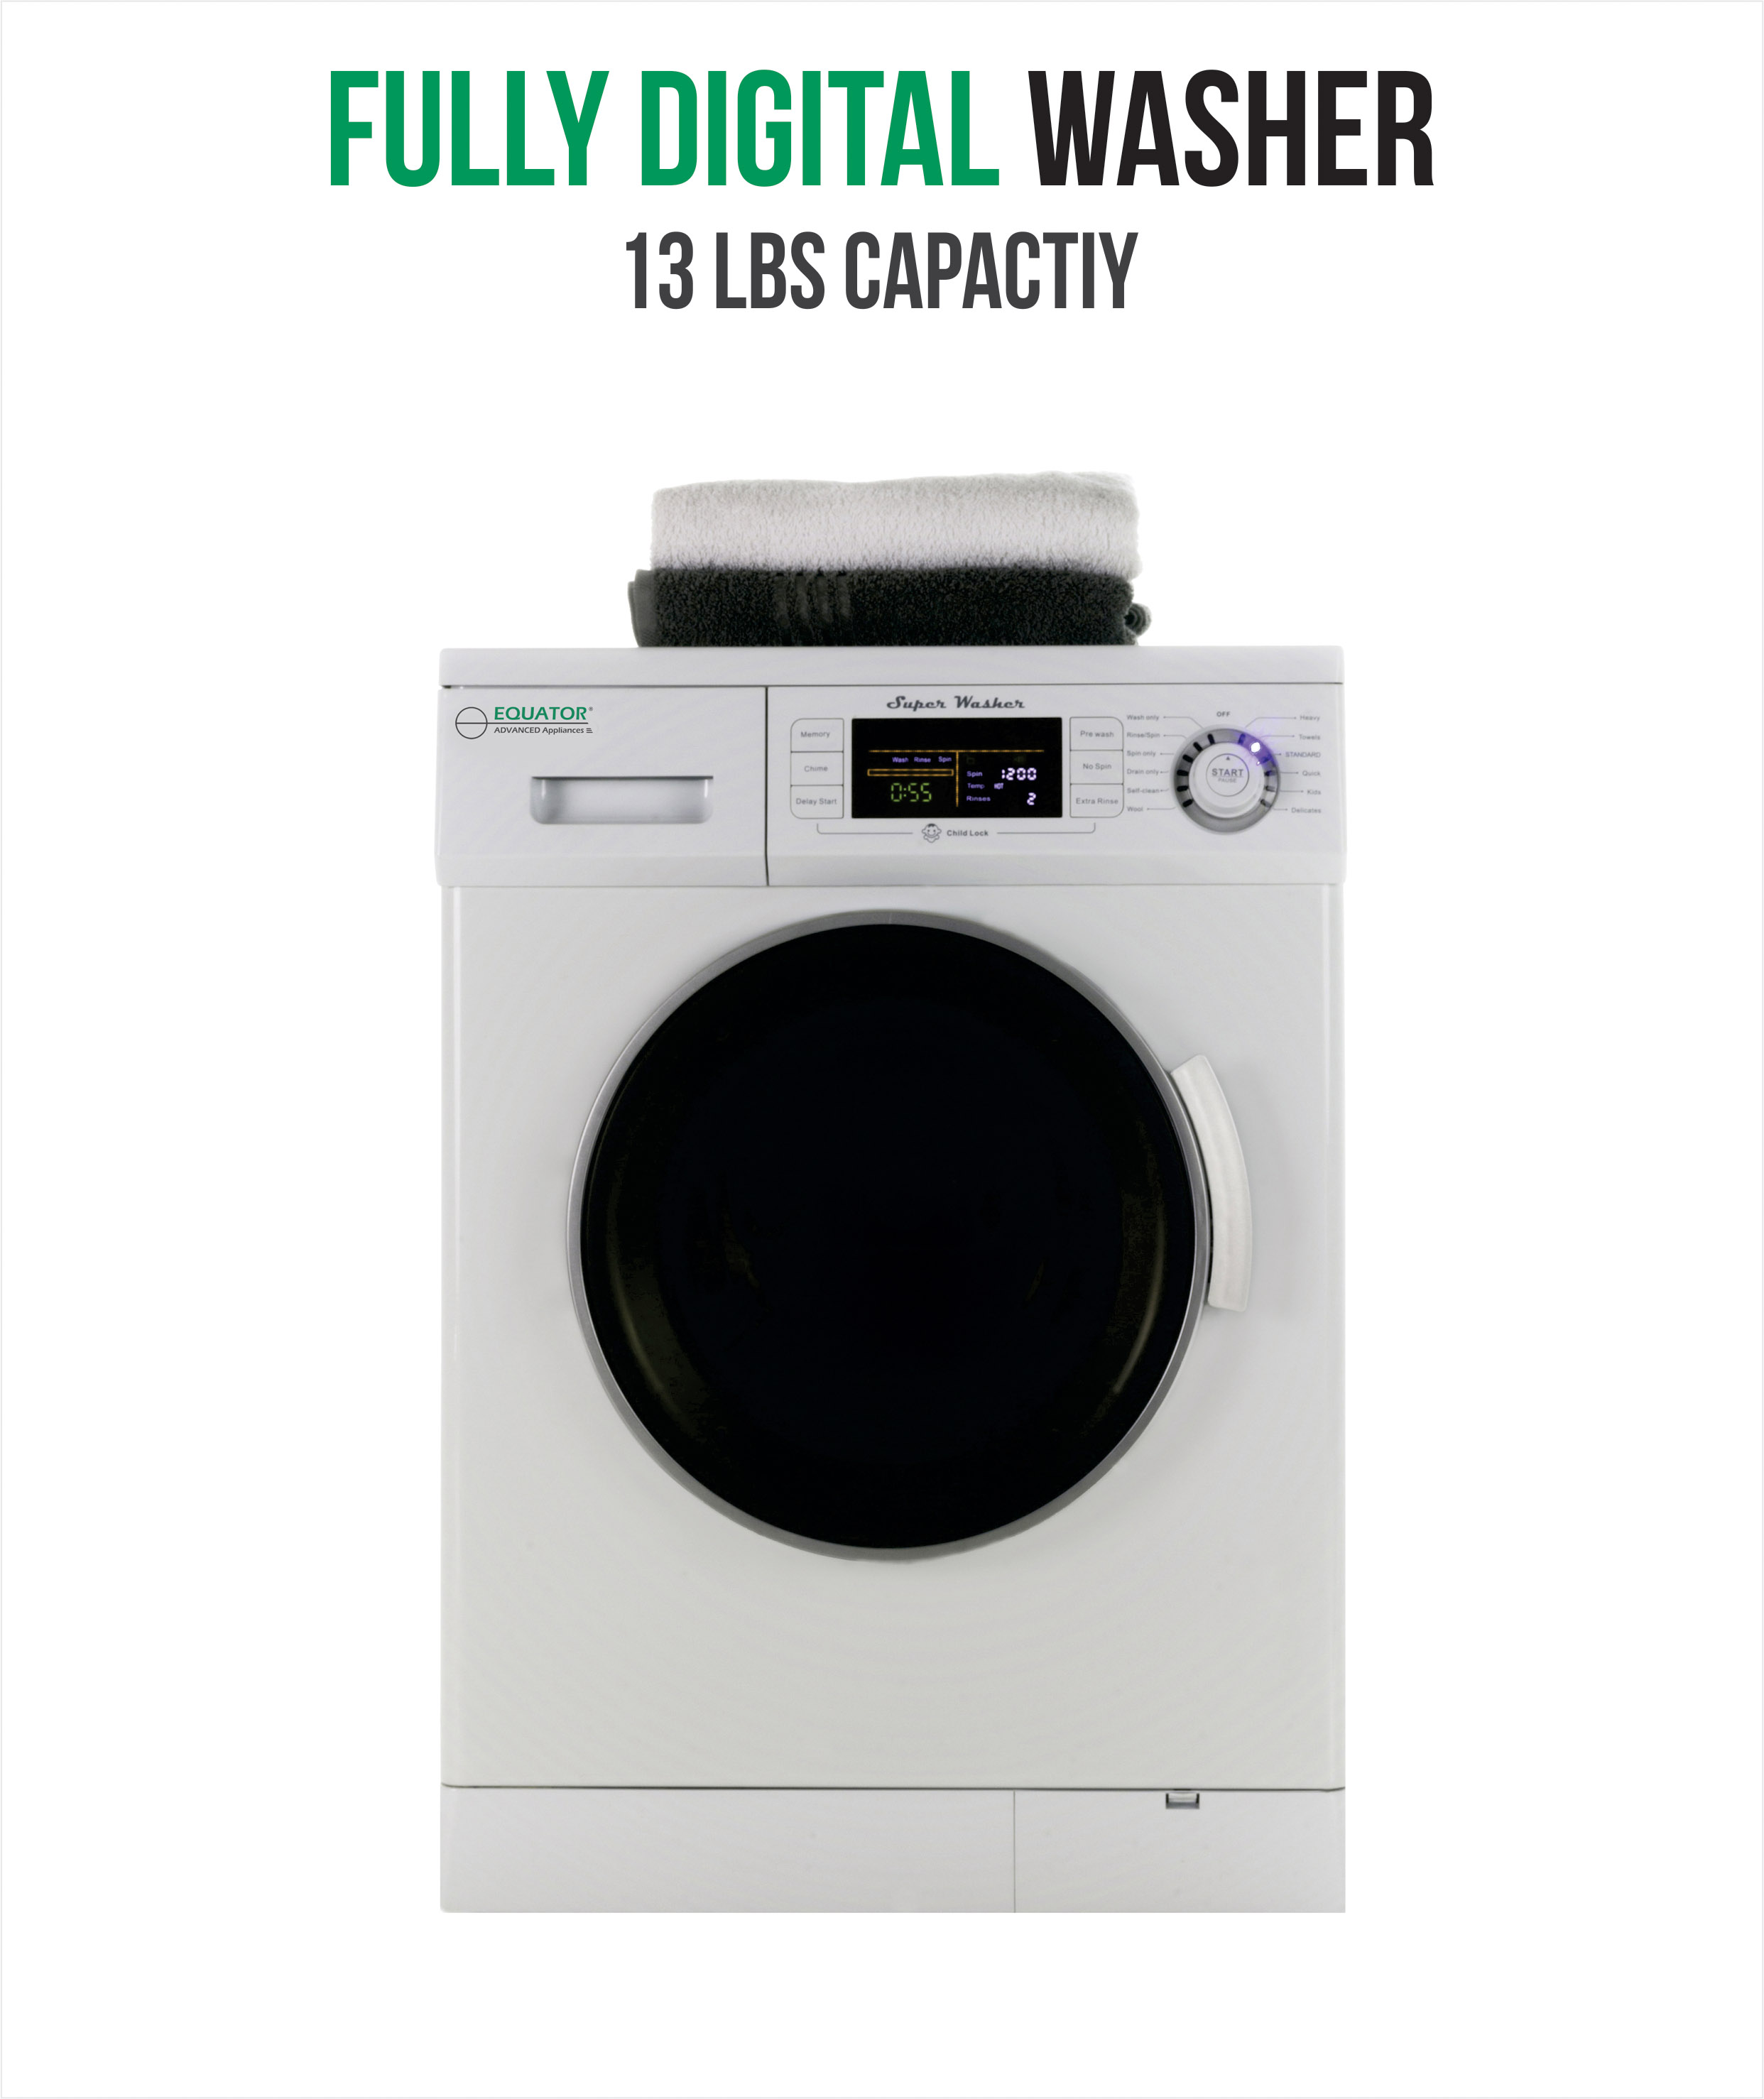 1.6 Cu. Ft. Compact Front Load Washer 1200 RPM with High Efficiency, Automatic Water Level, Delay Start.